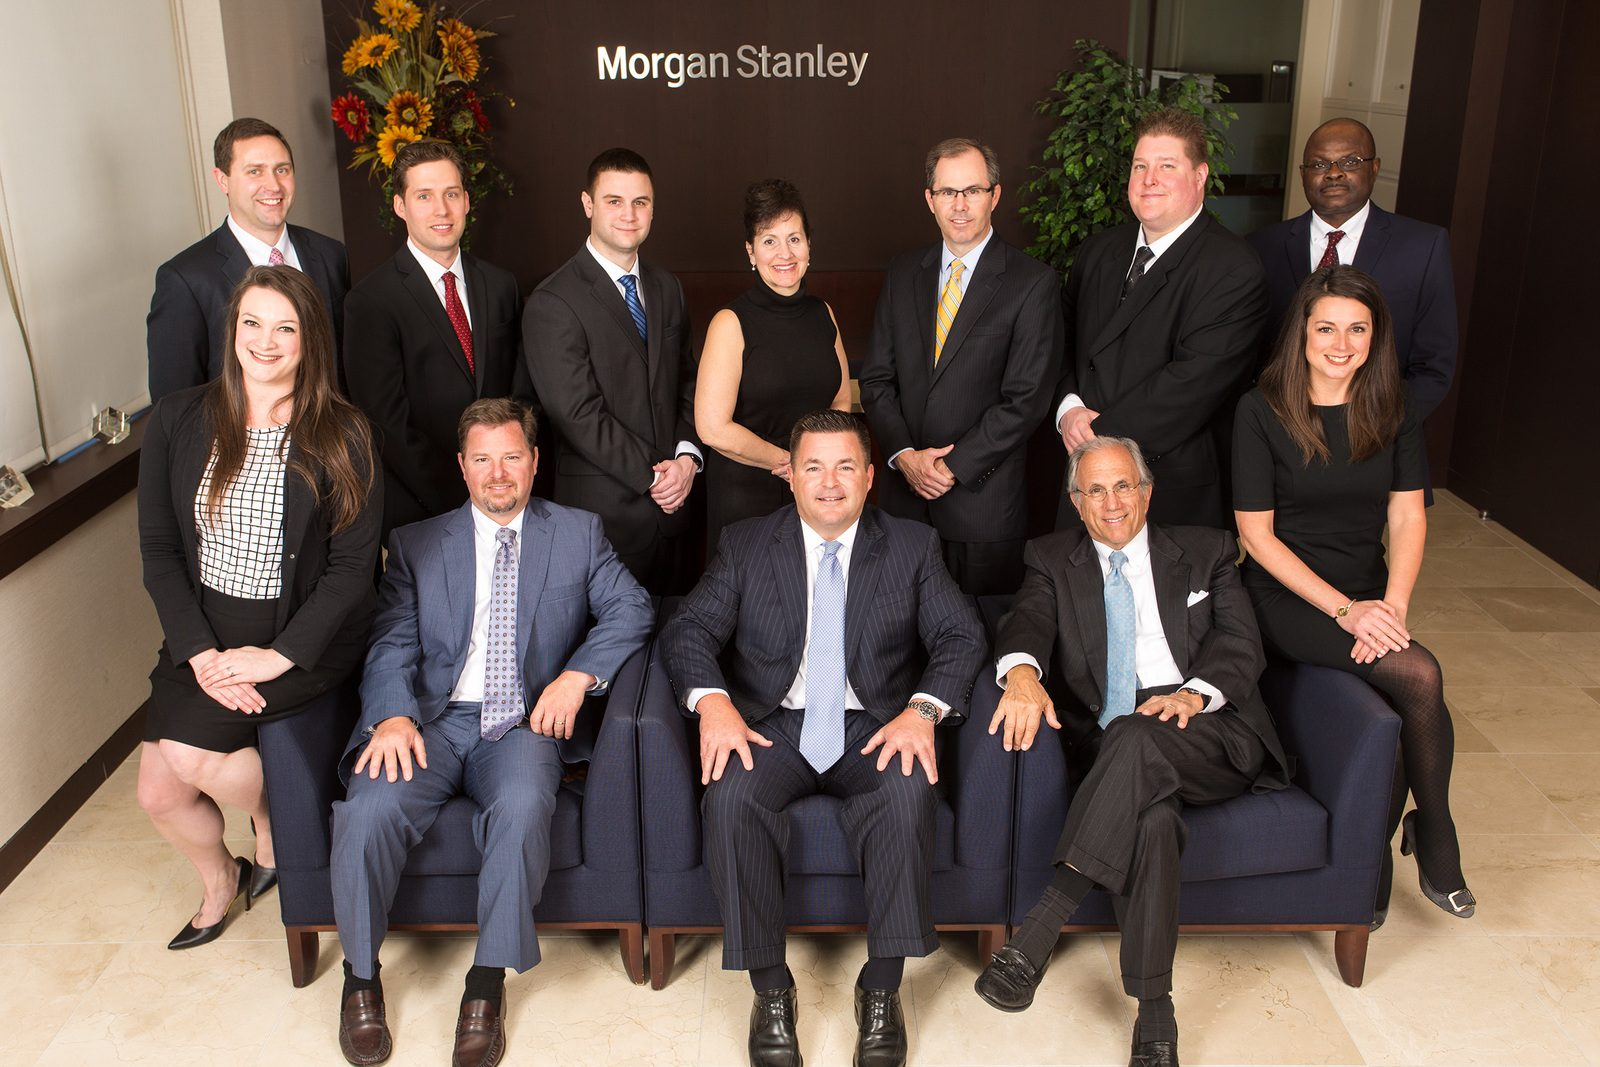 The Bell Broseker Wohl Group | Baltimore, MD | Morgan Stanley Wealth